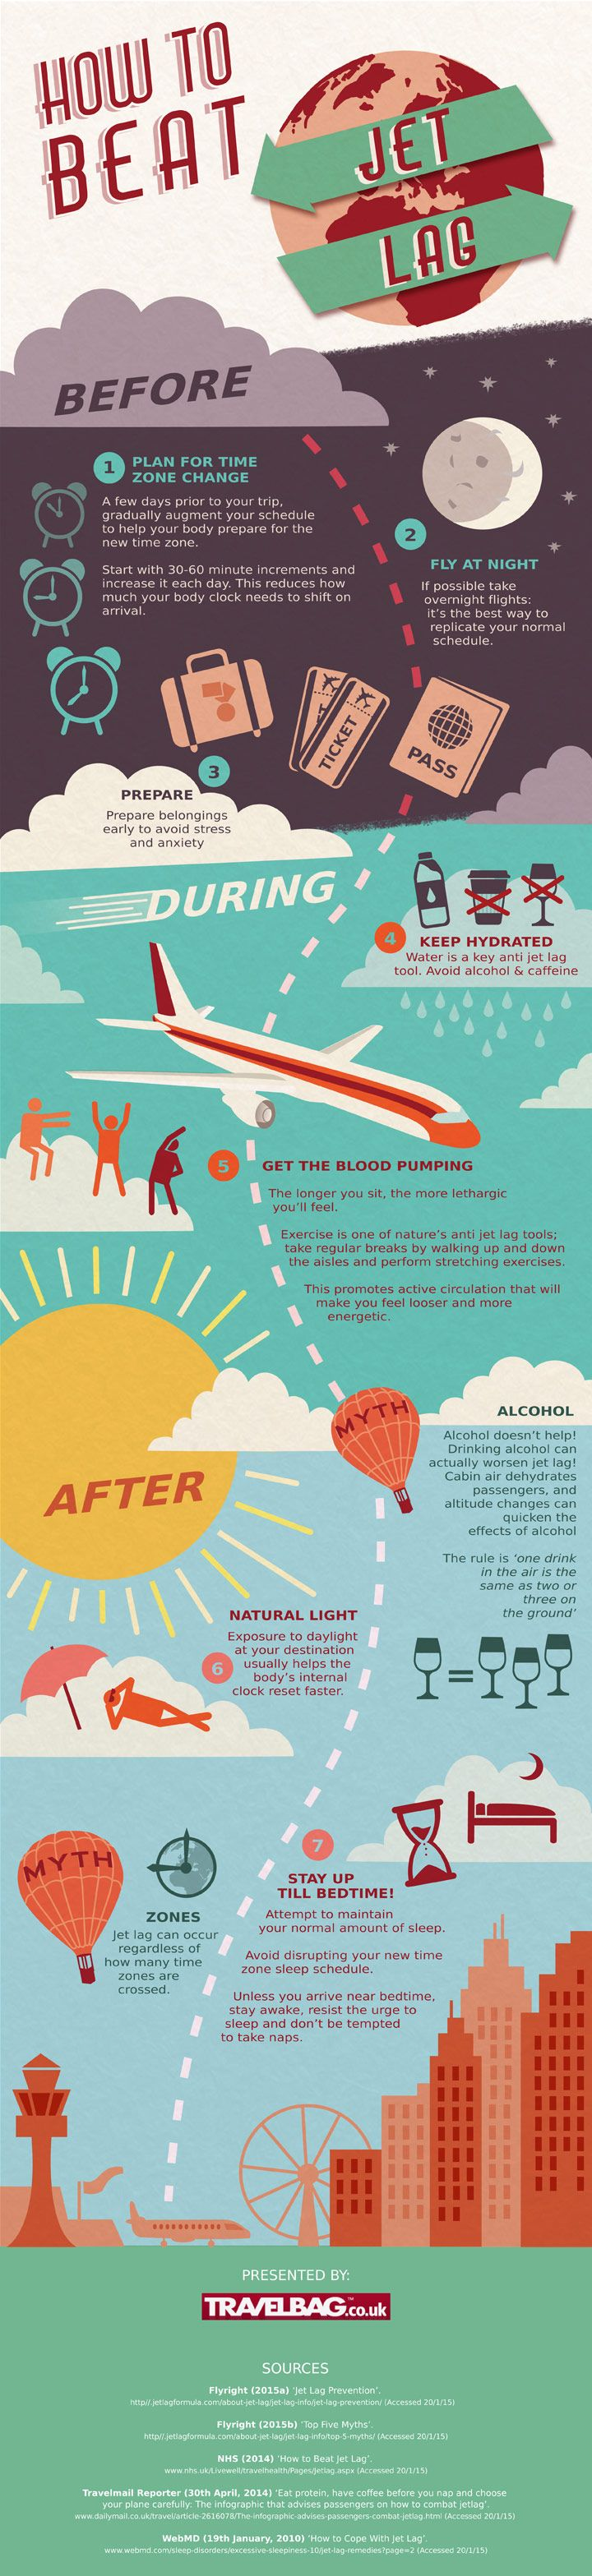 Tips To Avoid Jet Lag And Travel Fatigue Tipsographic Infographic Inspiration Infographic Infographic Design